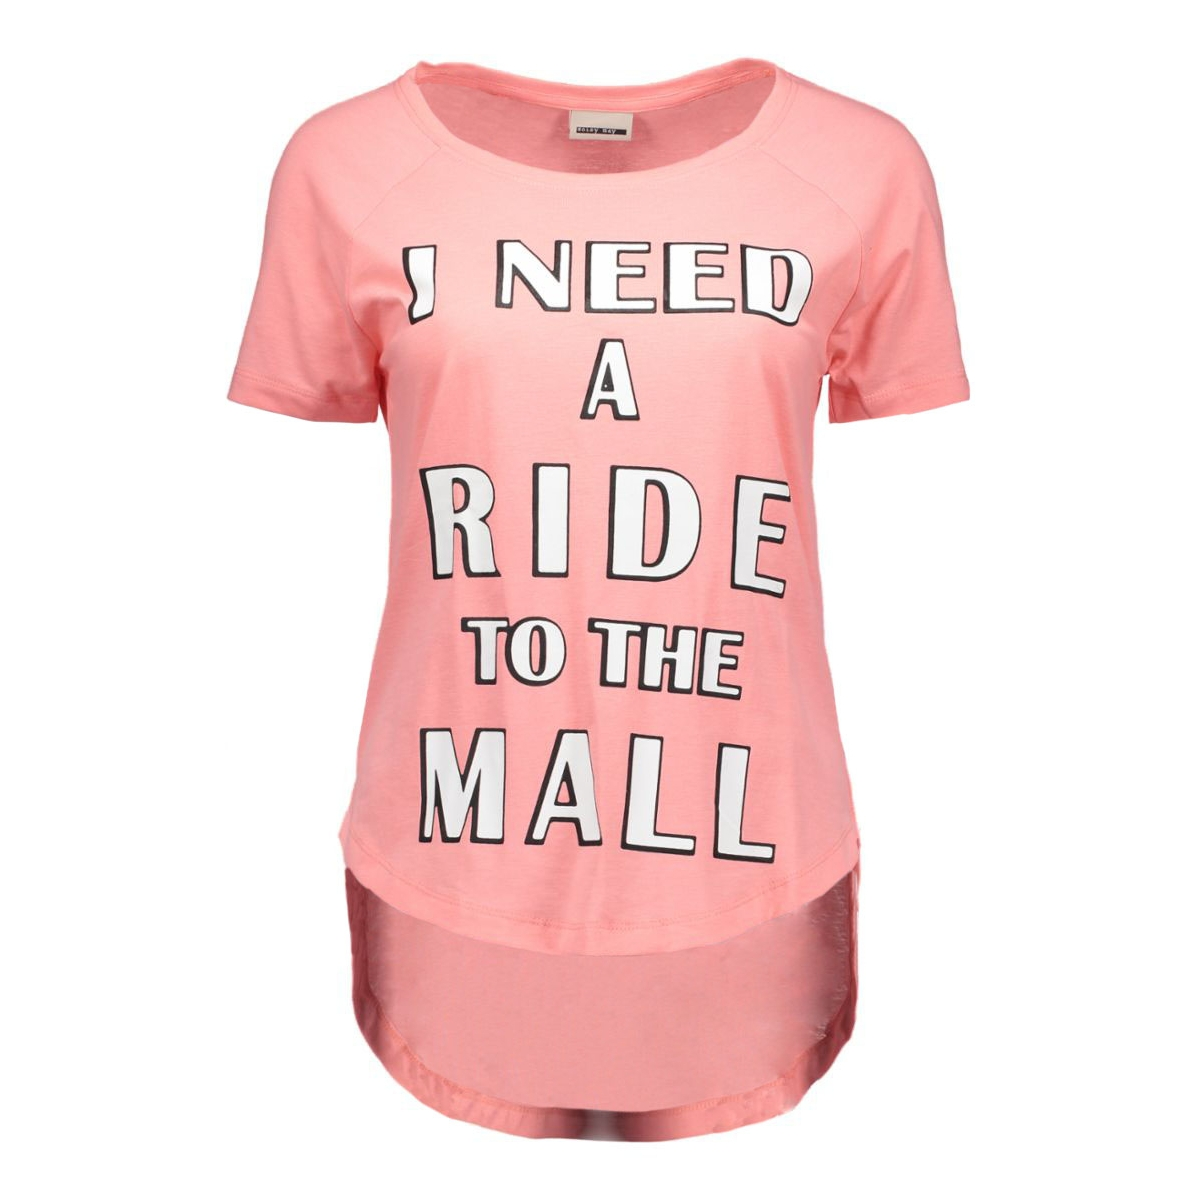 nmpeter s/s top 16- 6 10162859 noisy may t-shirt salmon rose